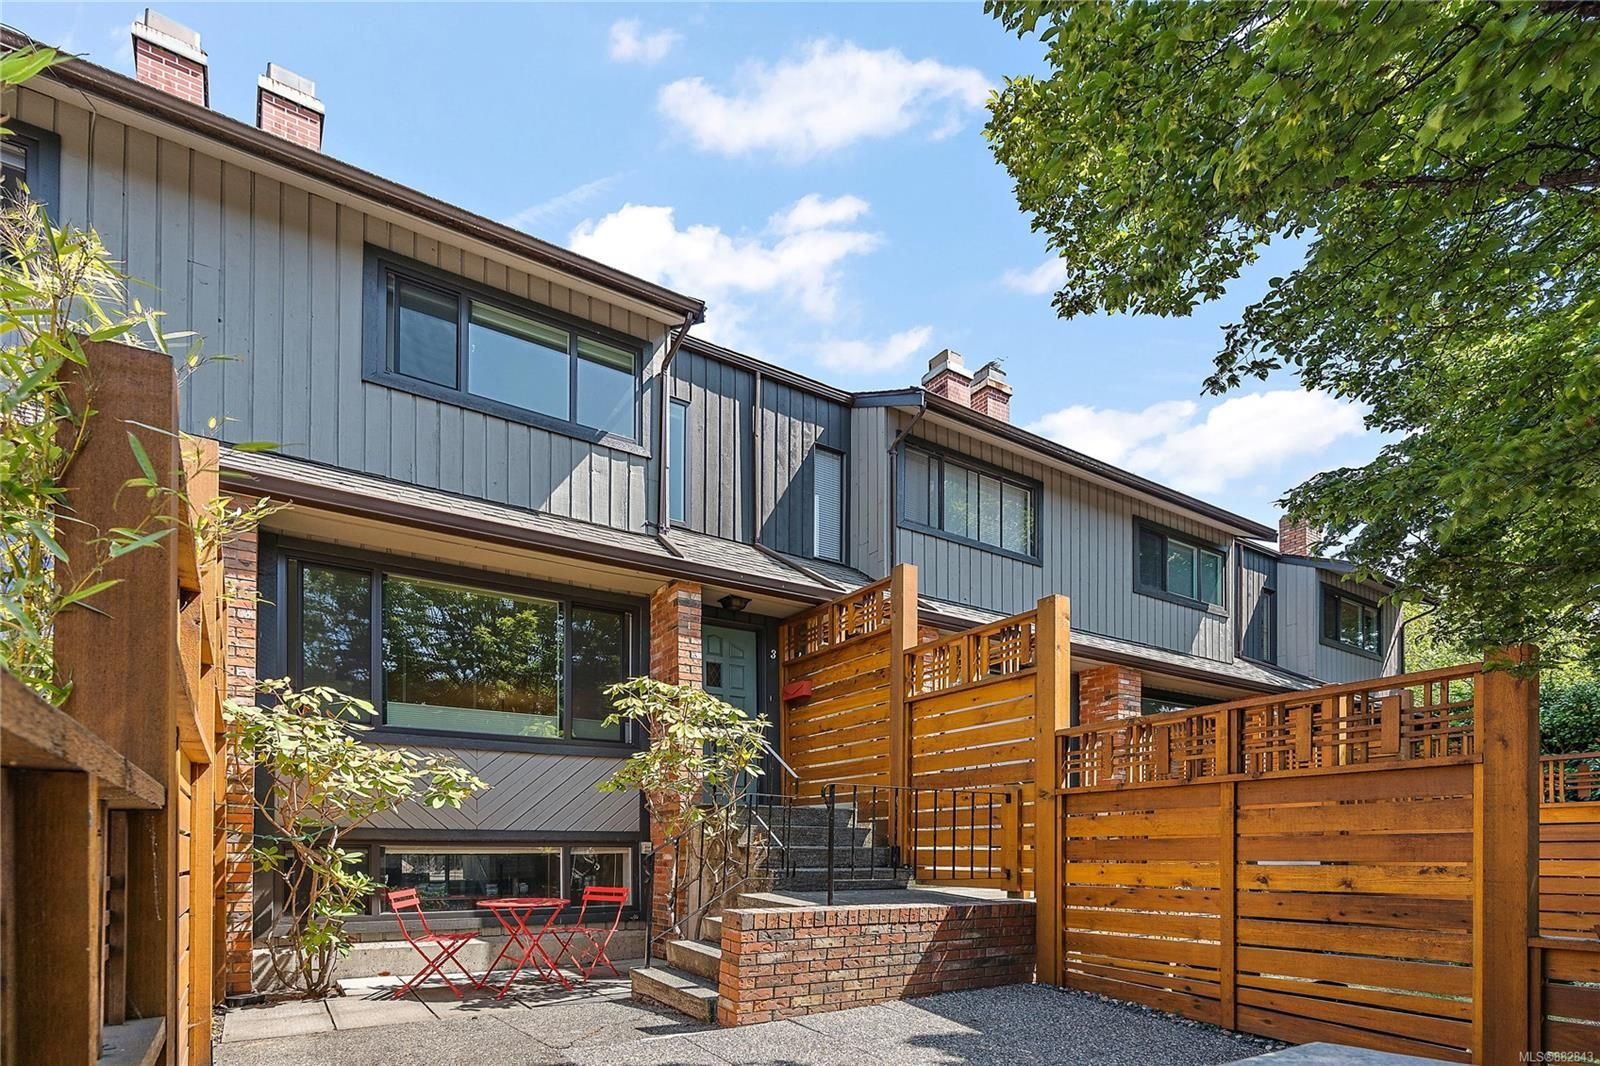 Main Photo: 3 290 Superior St in : Vi James Bay Row/Townhouse for sale (Victoria)  : MLS®# 882843